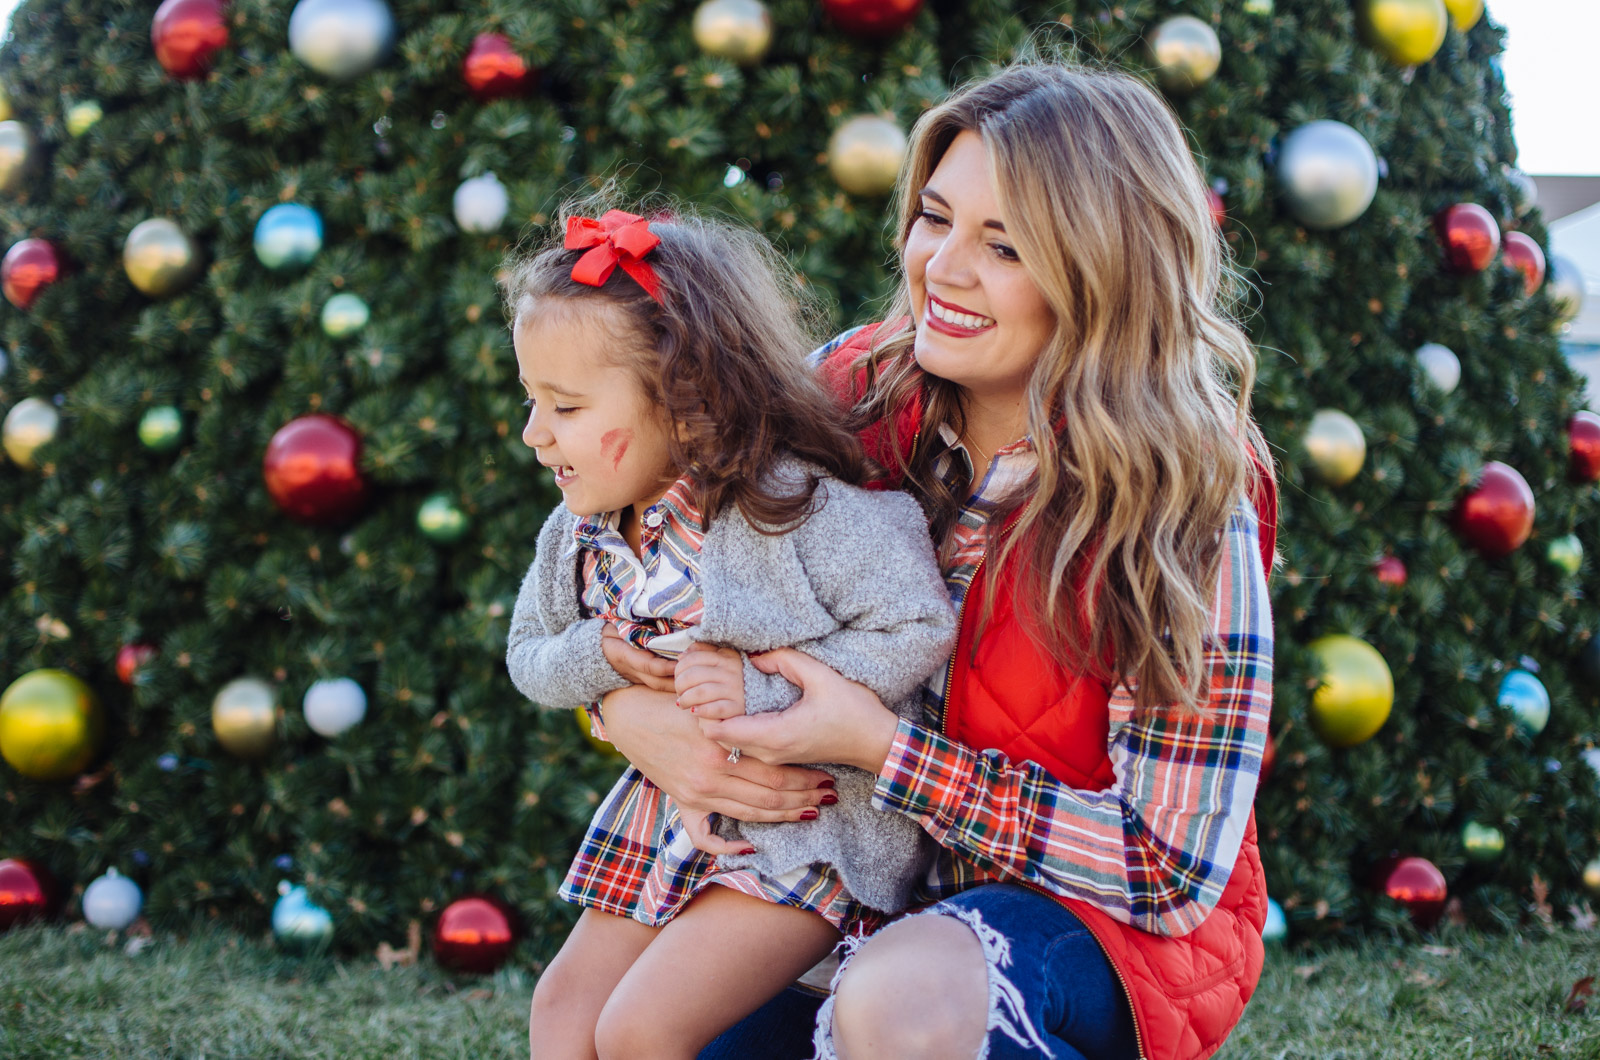 mommy and me outfits matching christmas - the cutest mother daughter outfits for christmas! Get all the outfit details at bylaurenm.com!